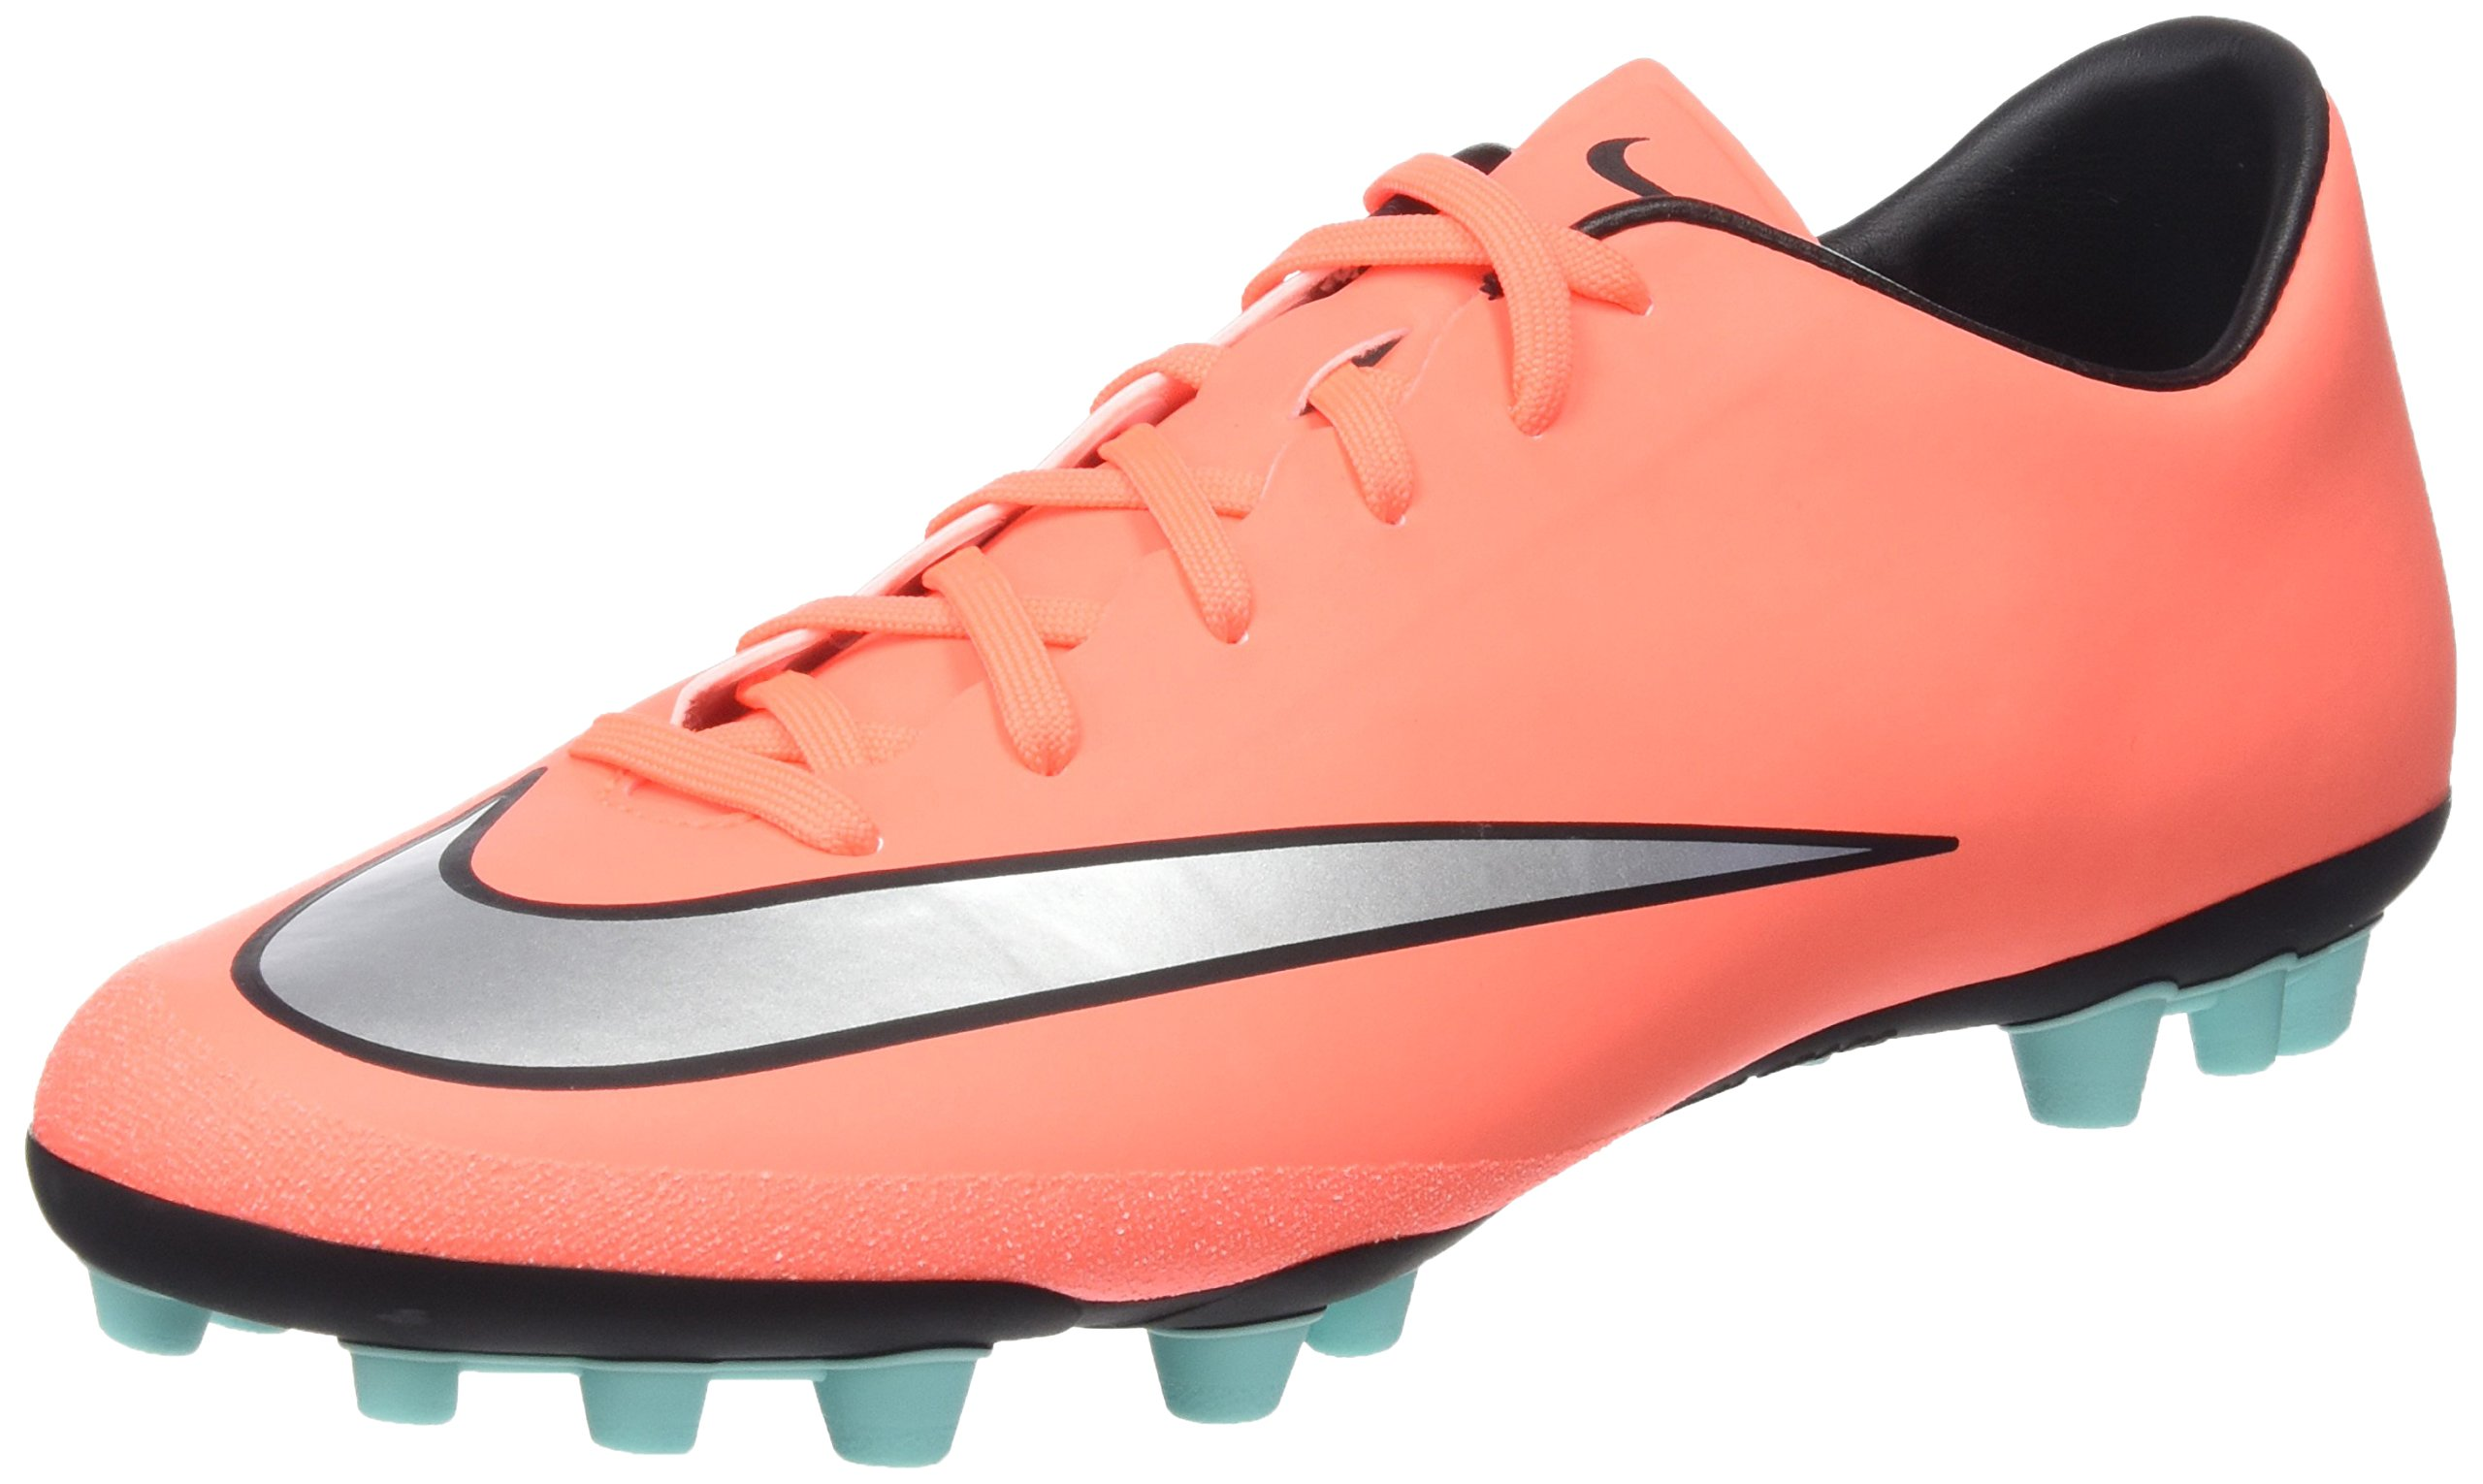 Nike Mercurial Victory V AG R, Chaussures de Football Compétition Homme,  Multicolore (Orange), 44.5 EU